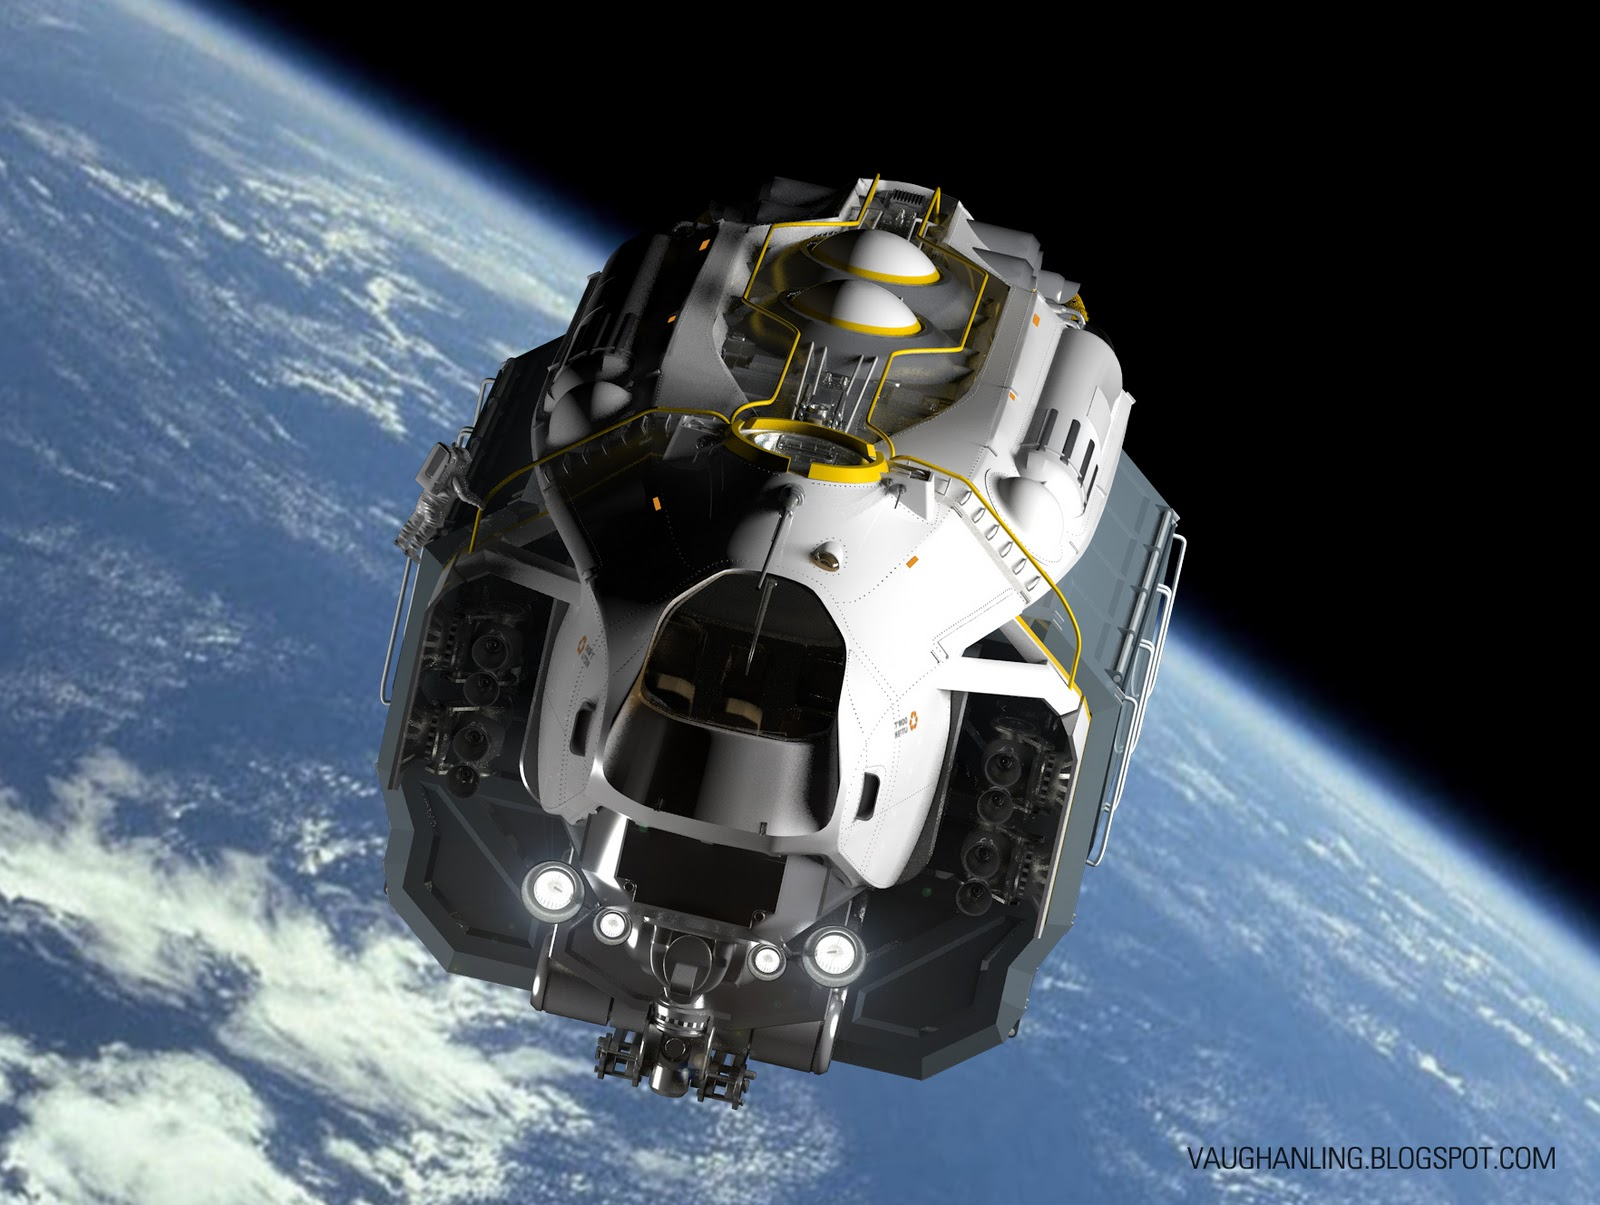 V ling - Homes built from recycled materials nasas outer space challenge ...